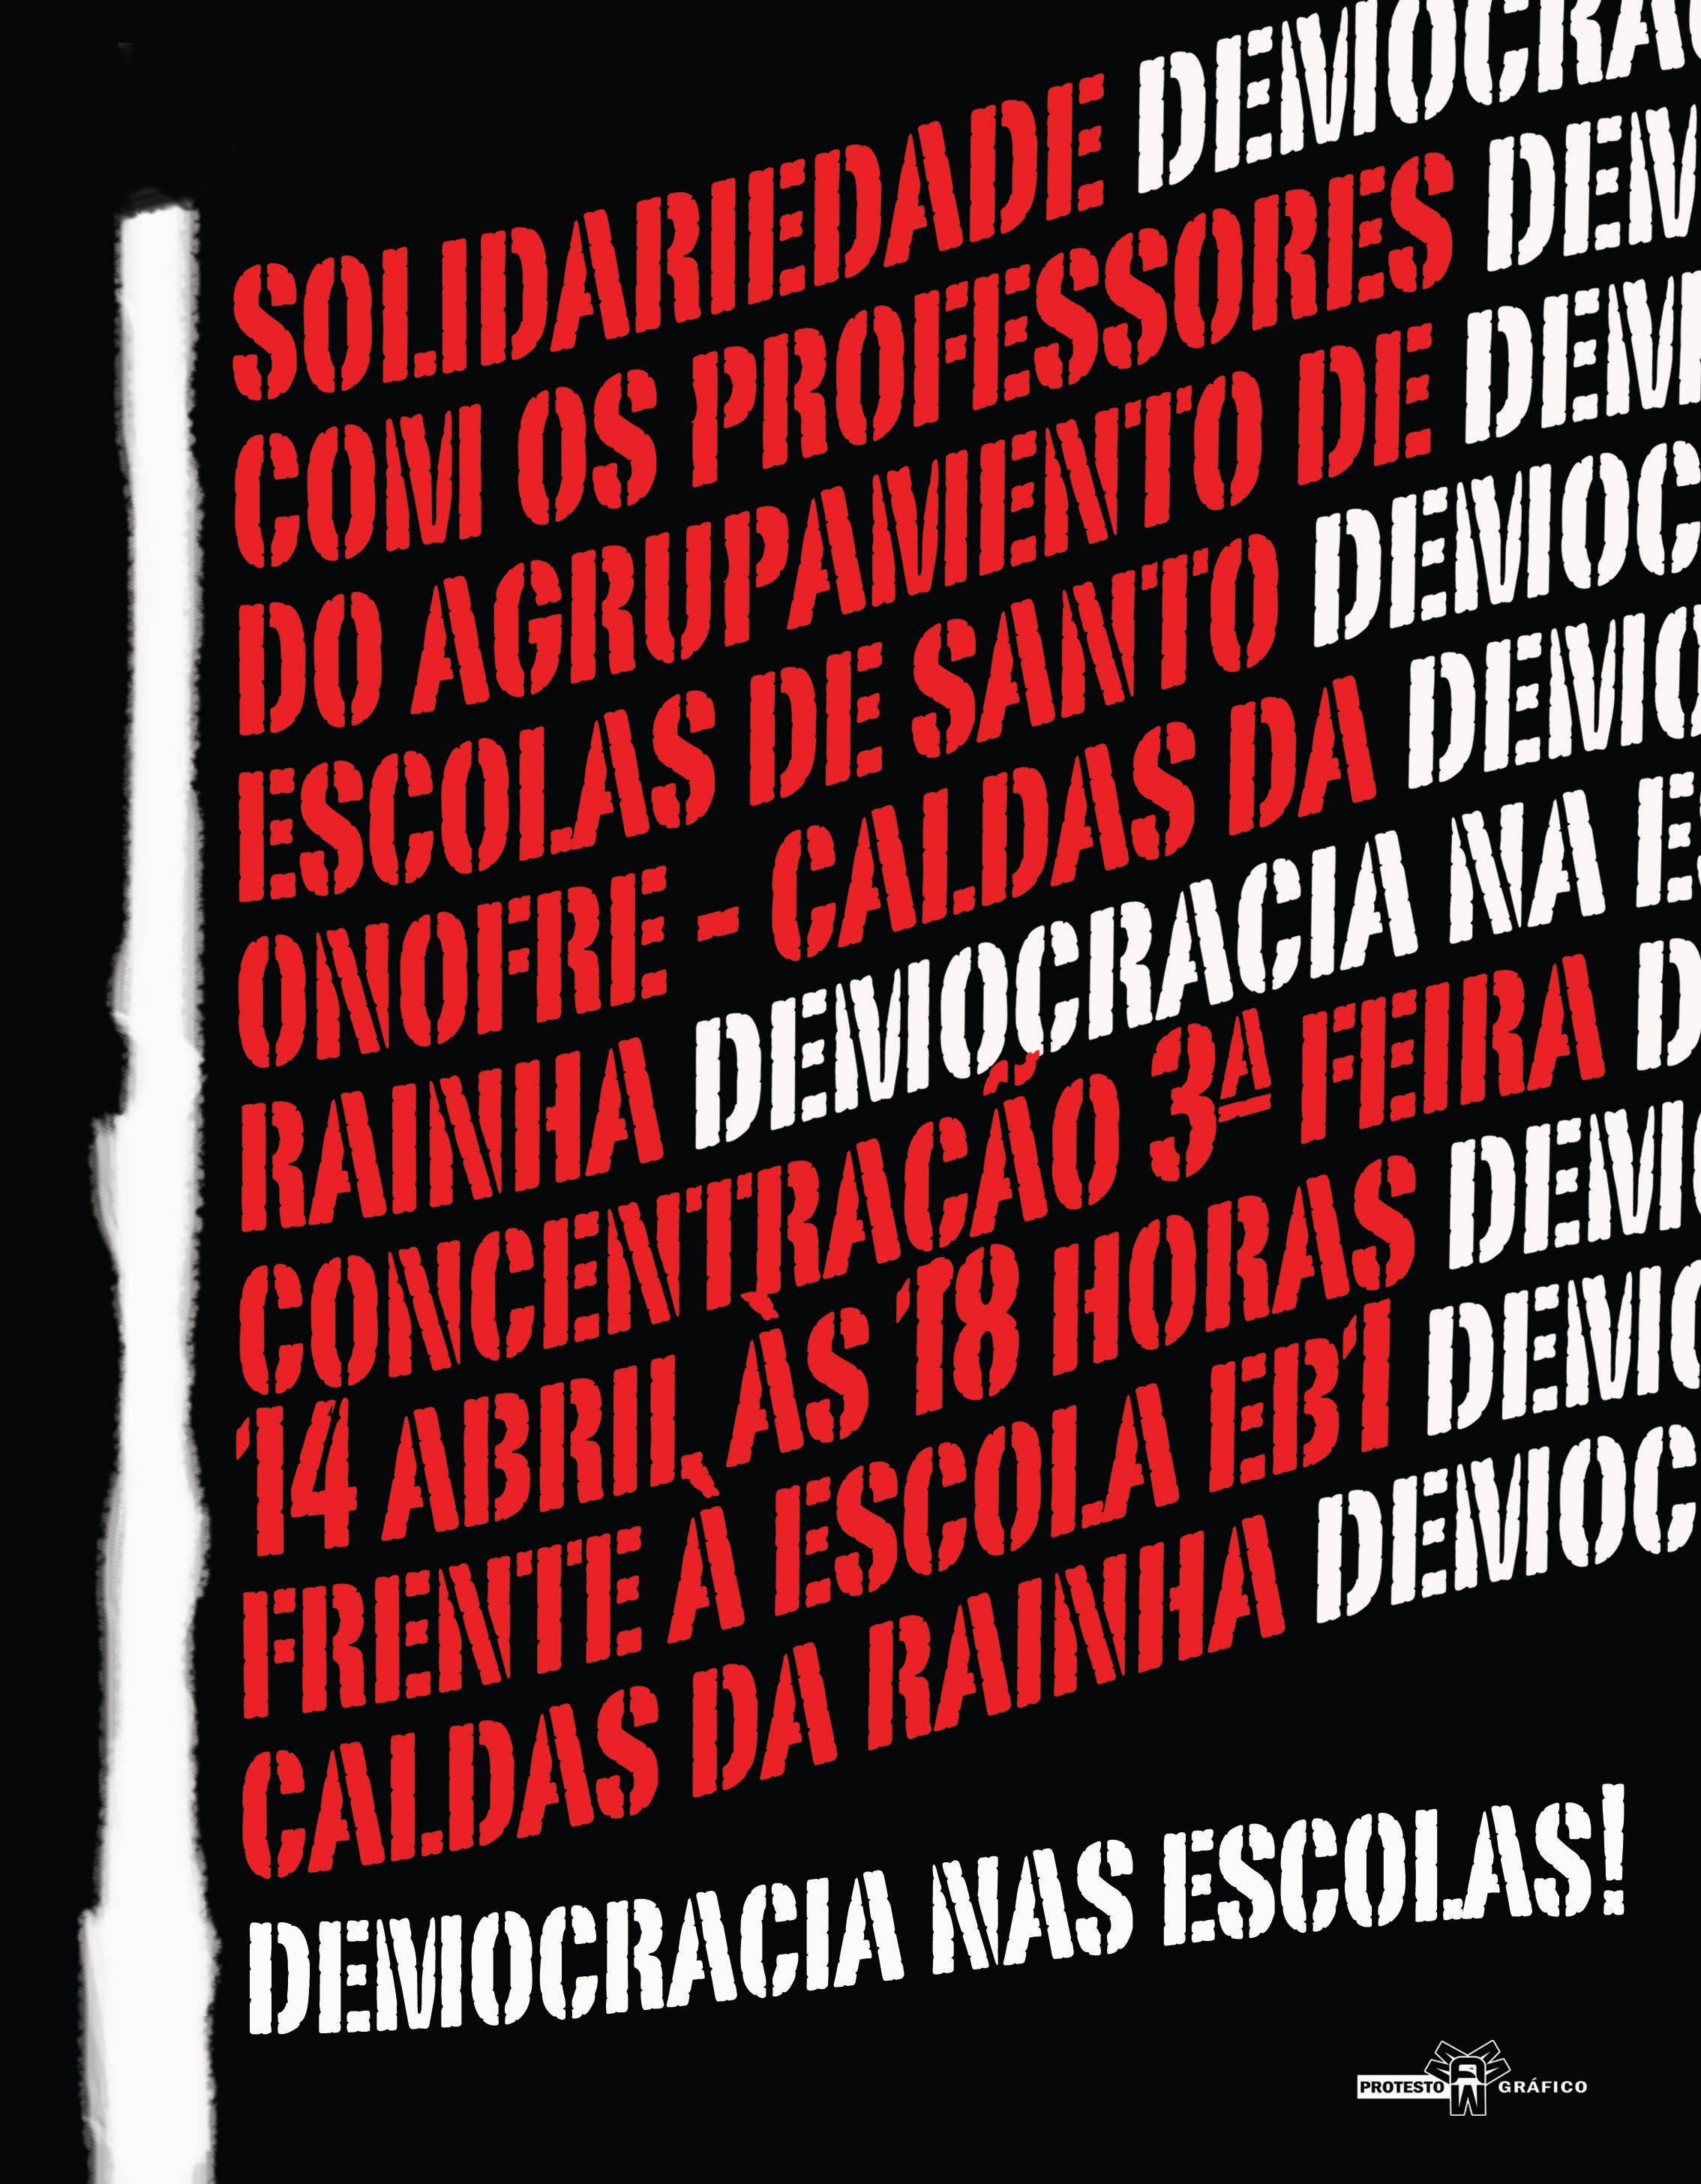 http://protestografico.files.wordpress.com/2009/04/santoonofre.jpg